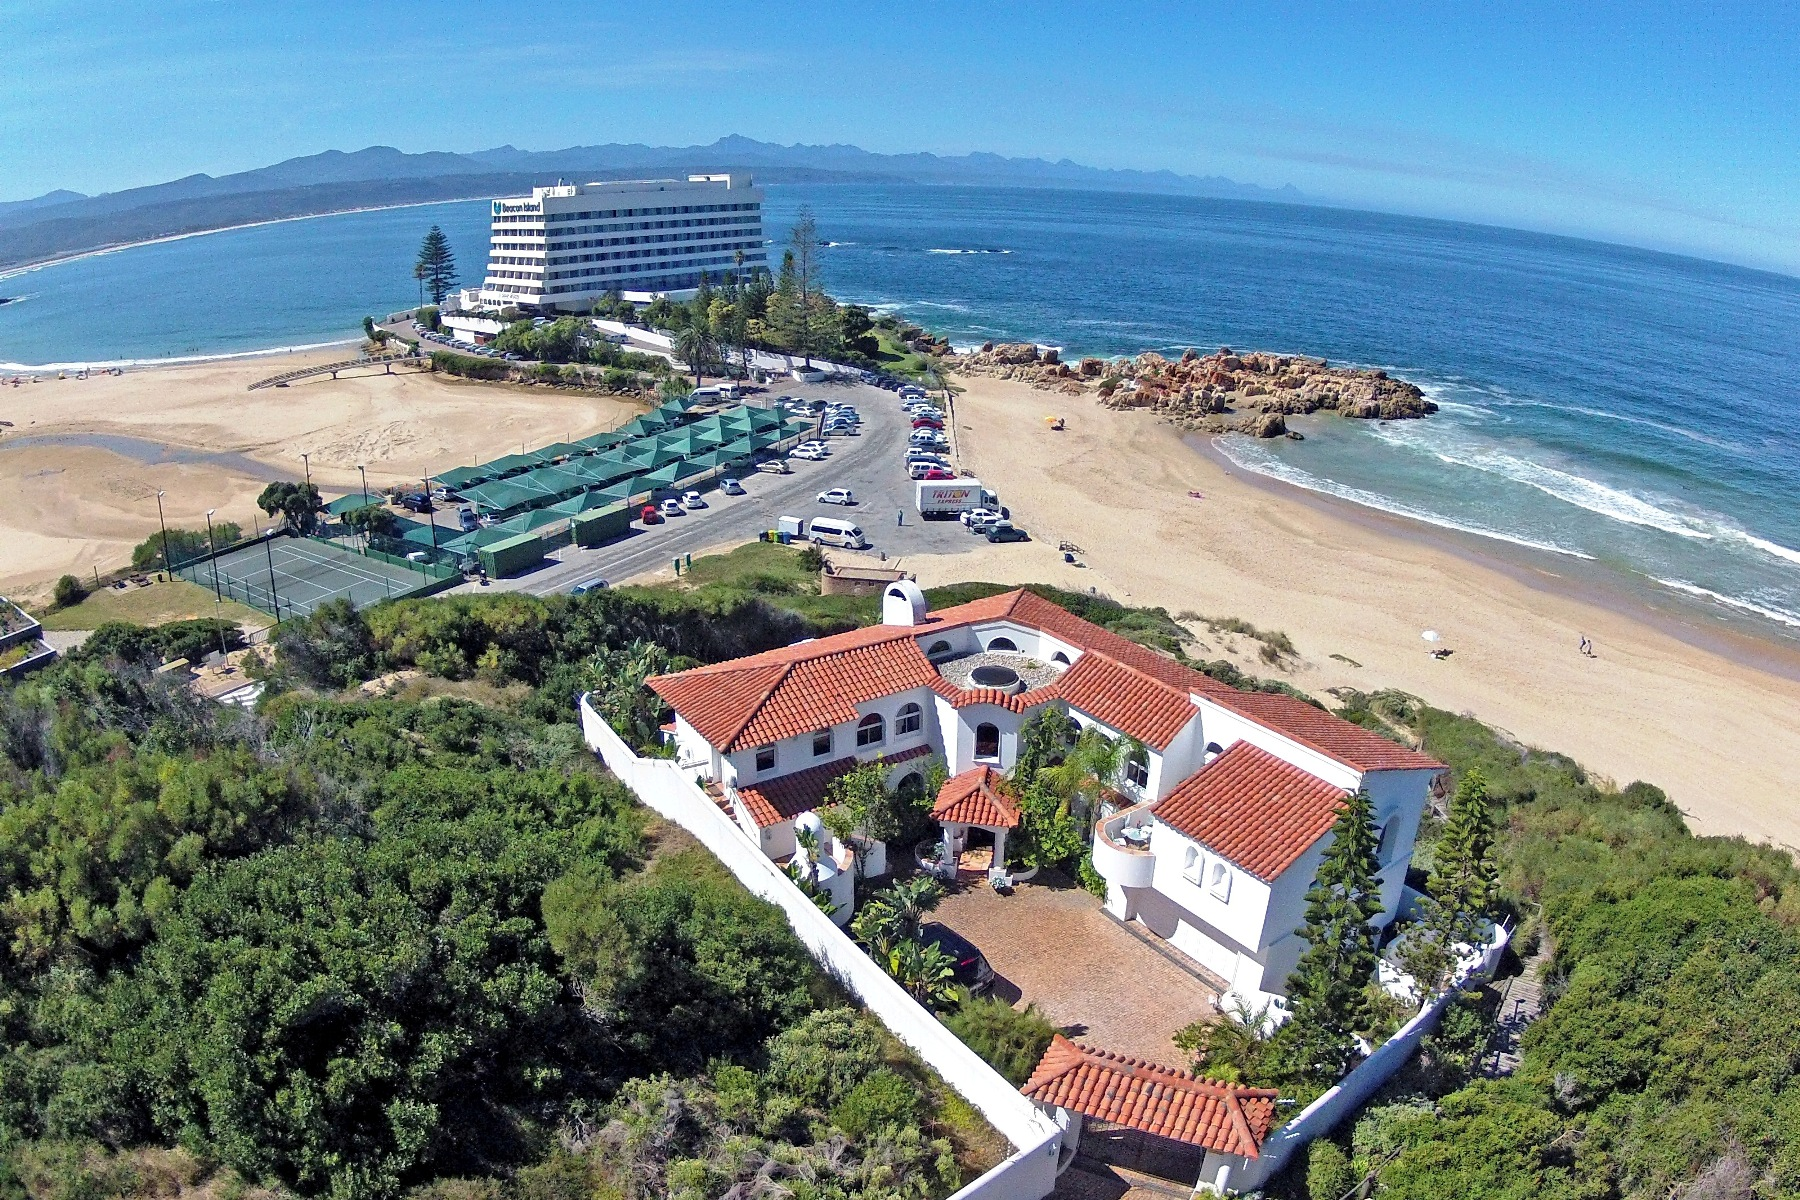 Single Family Home for Sale at Beachfront Beachy Head Drive Home Plettenberg Bay, Western Cape, 6600 South Africa